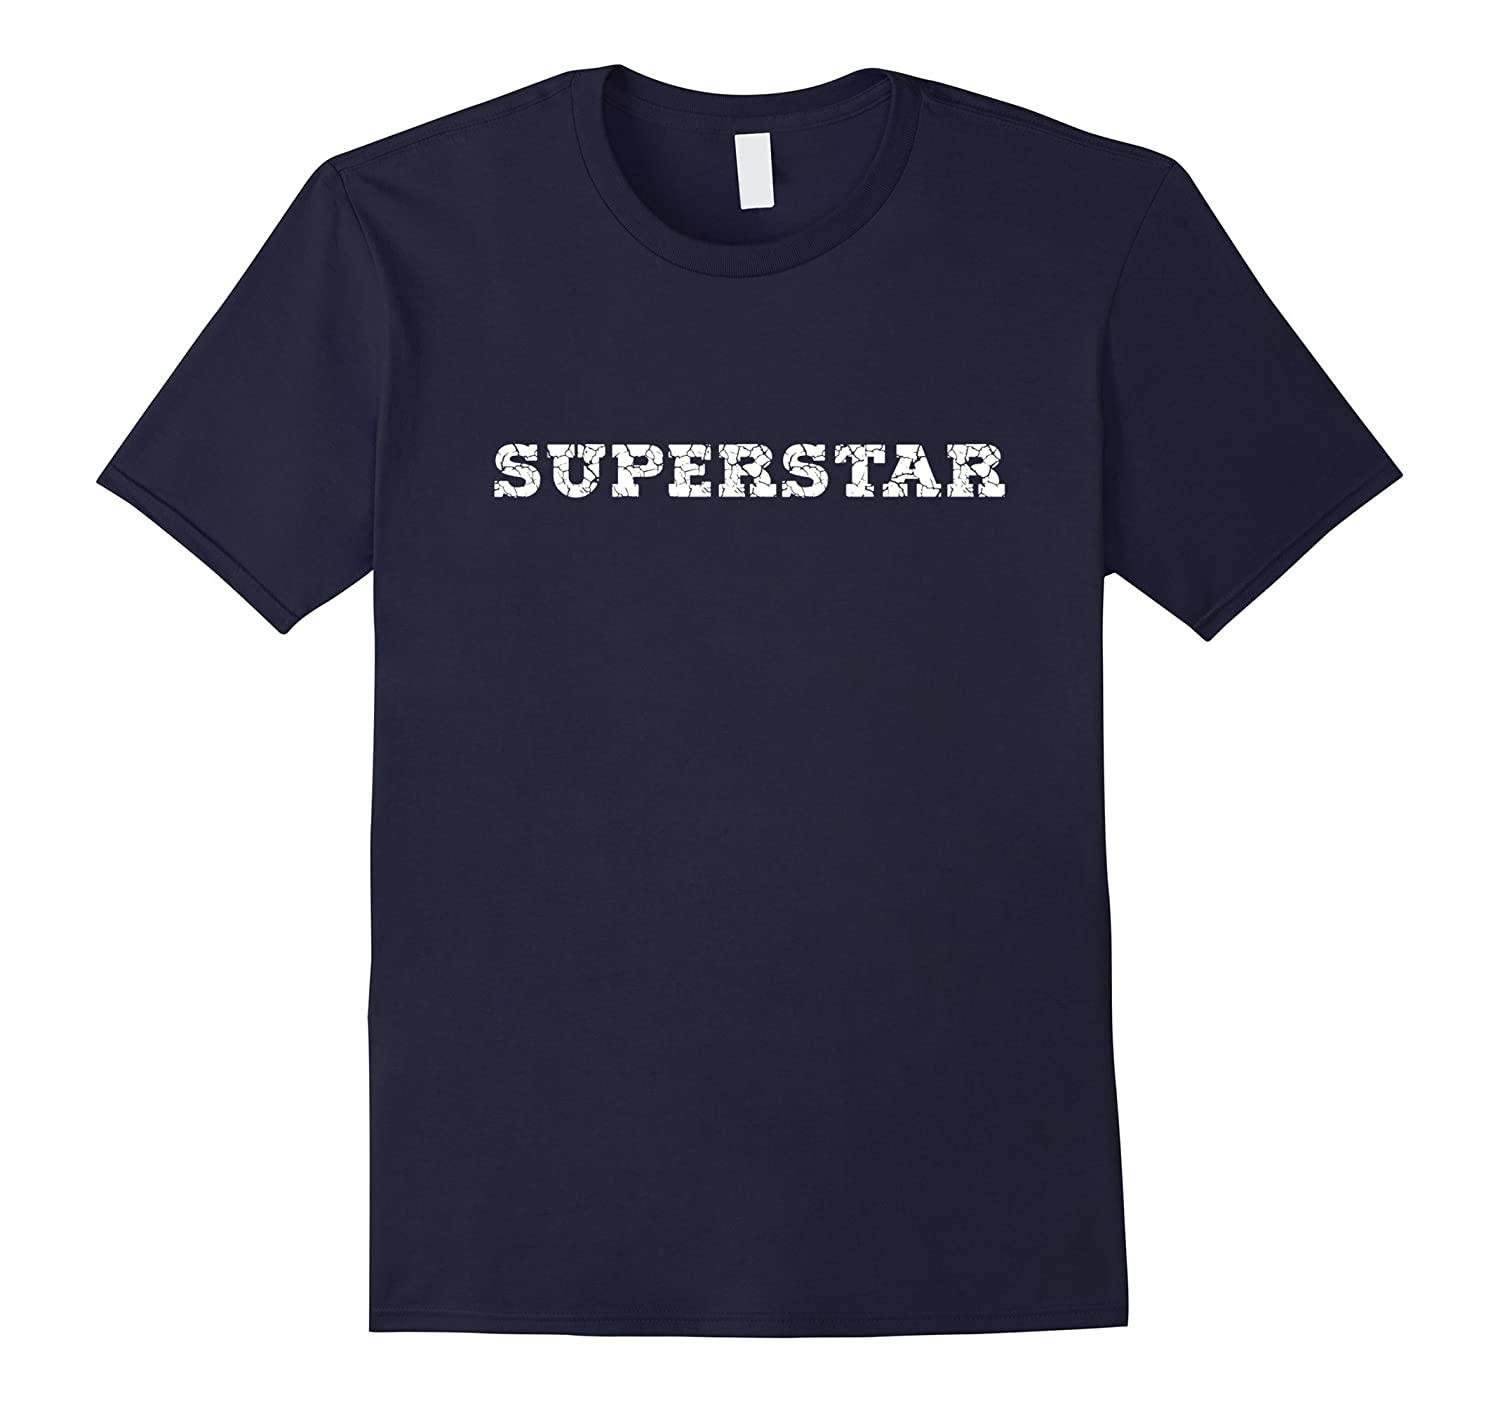 Superstar T Shirt - Fun College T-Shirts Gift Idea Partying-FL